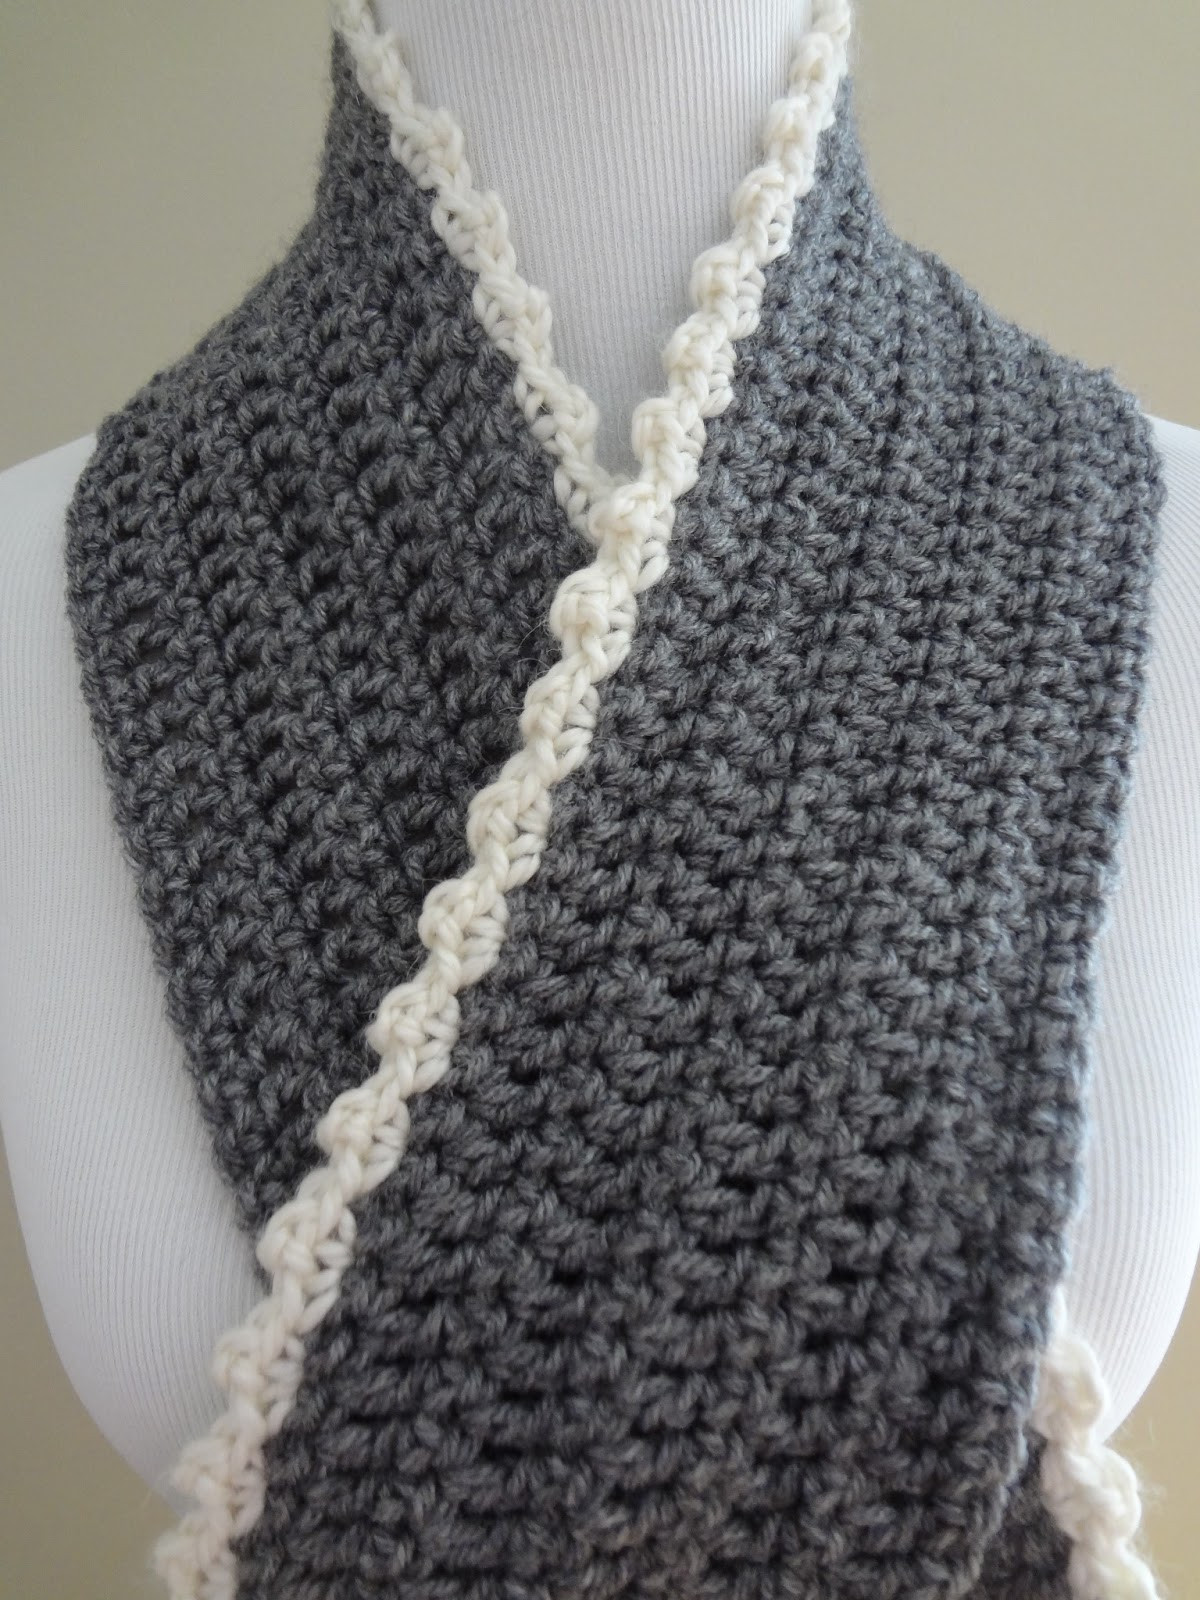 Single Crochet Patterns Unique Single Crochet Scarf Pattern Crochet and Knit Of Single Crochet Patterns Inspirational Zig Zag Crochet Patterns Free Patterns